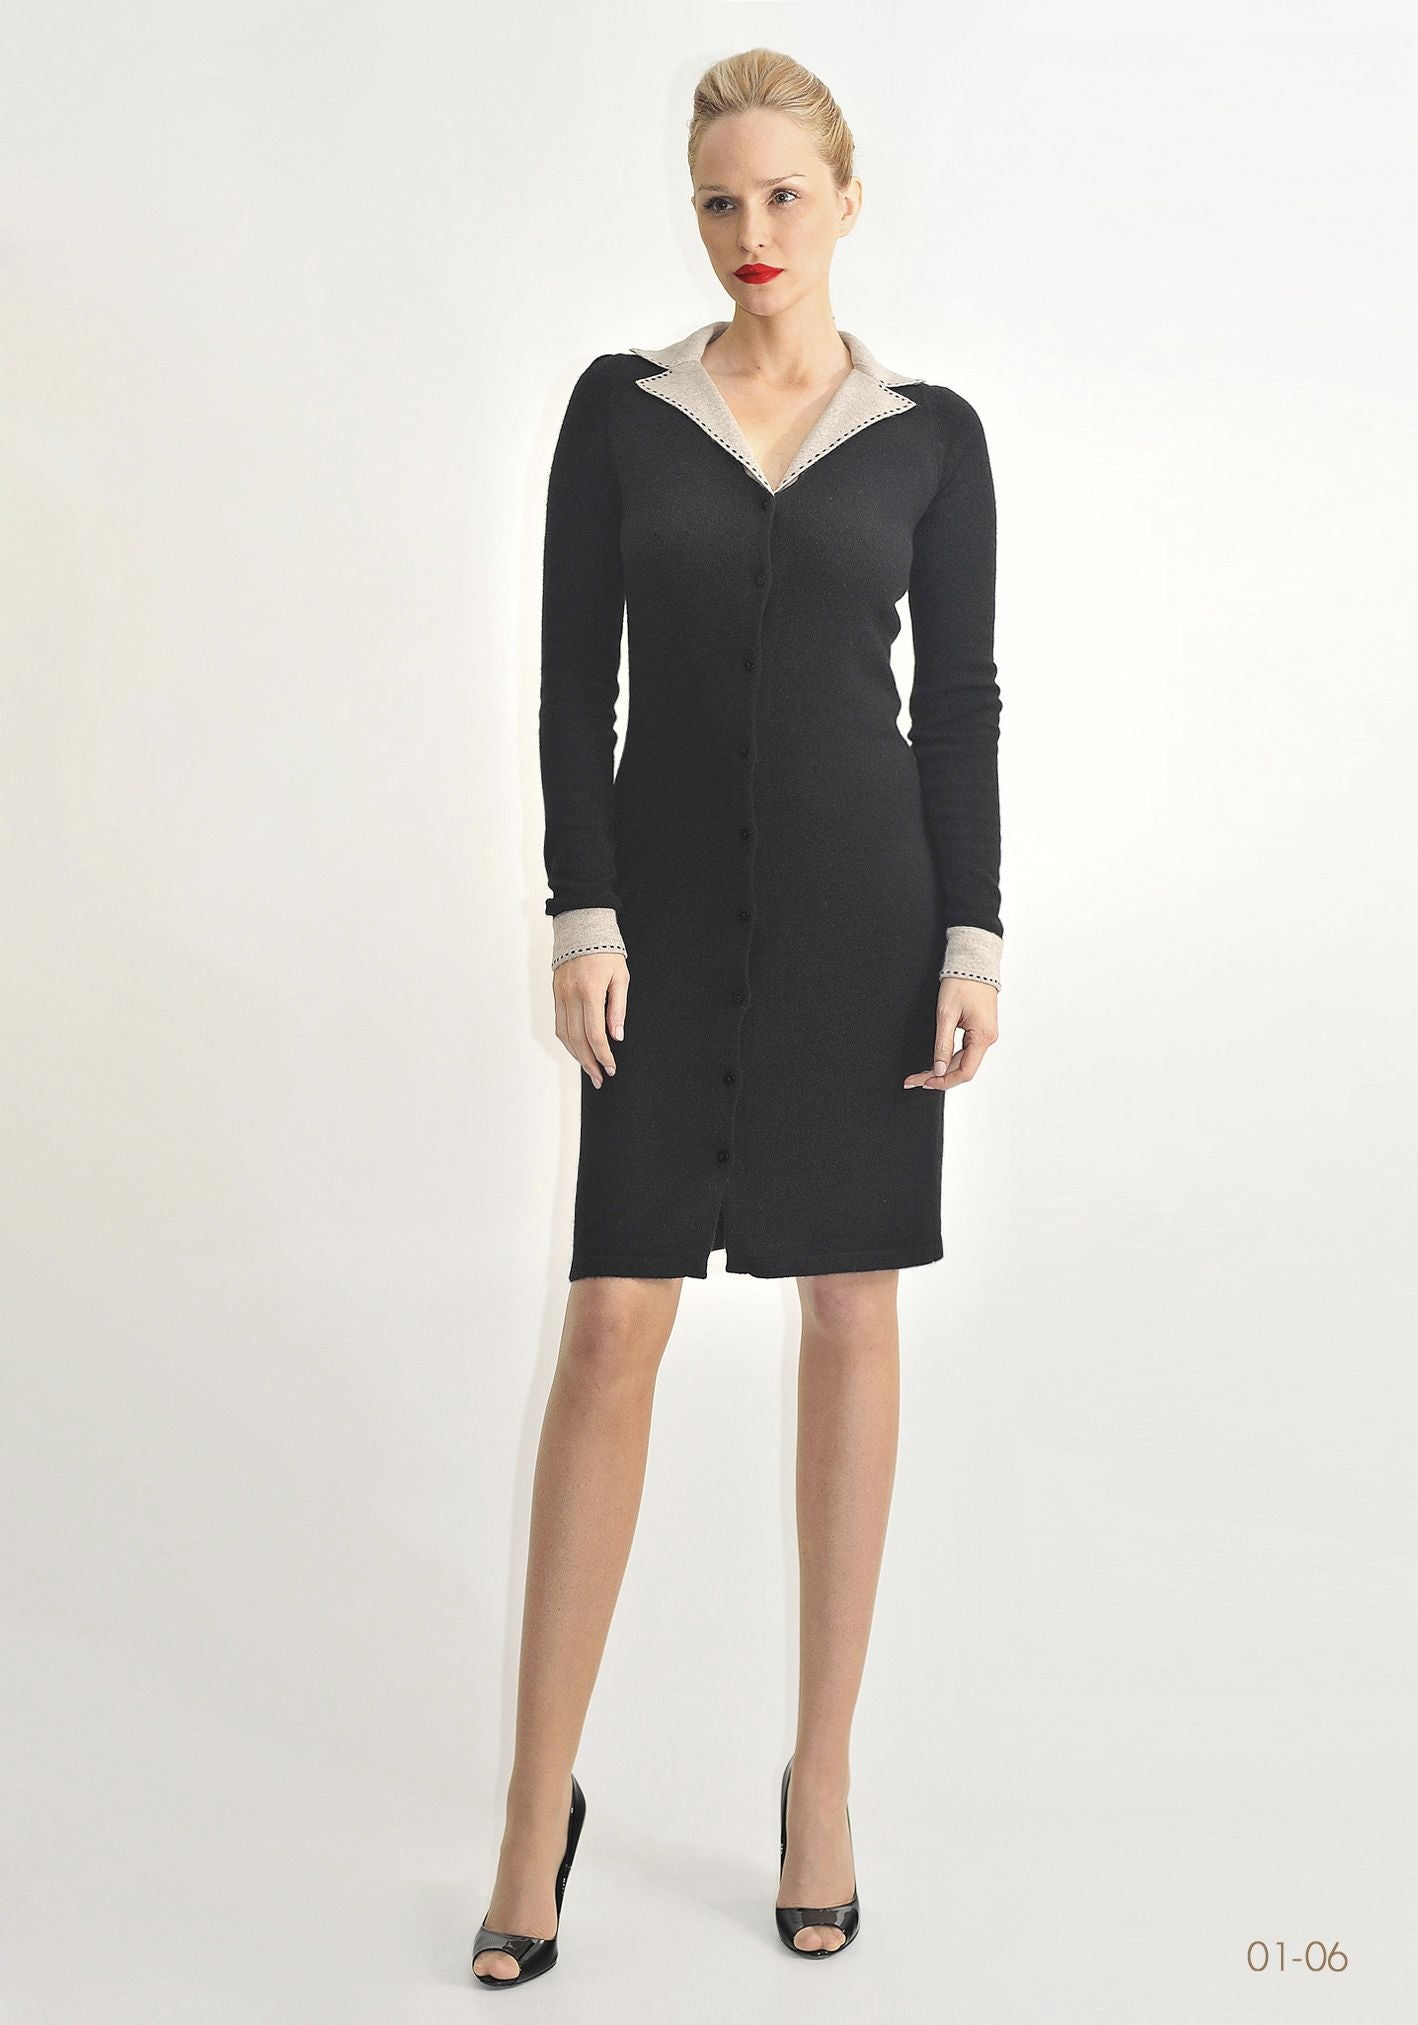 Collared button up cashmere dress